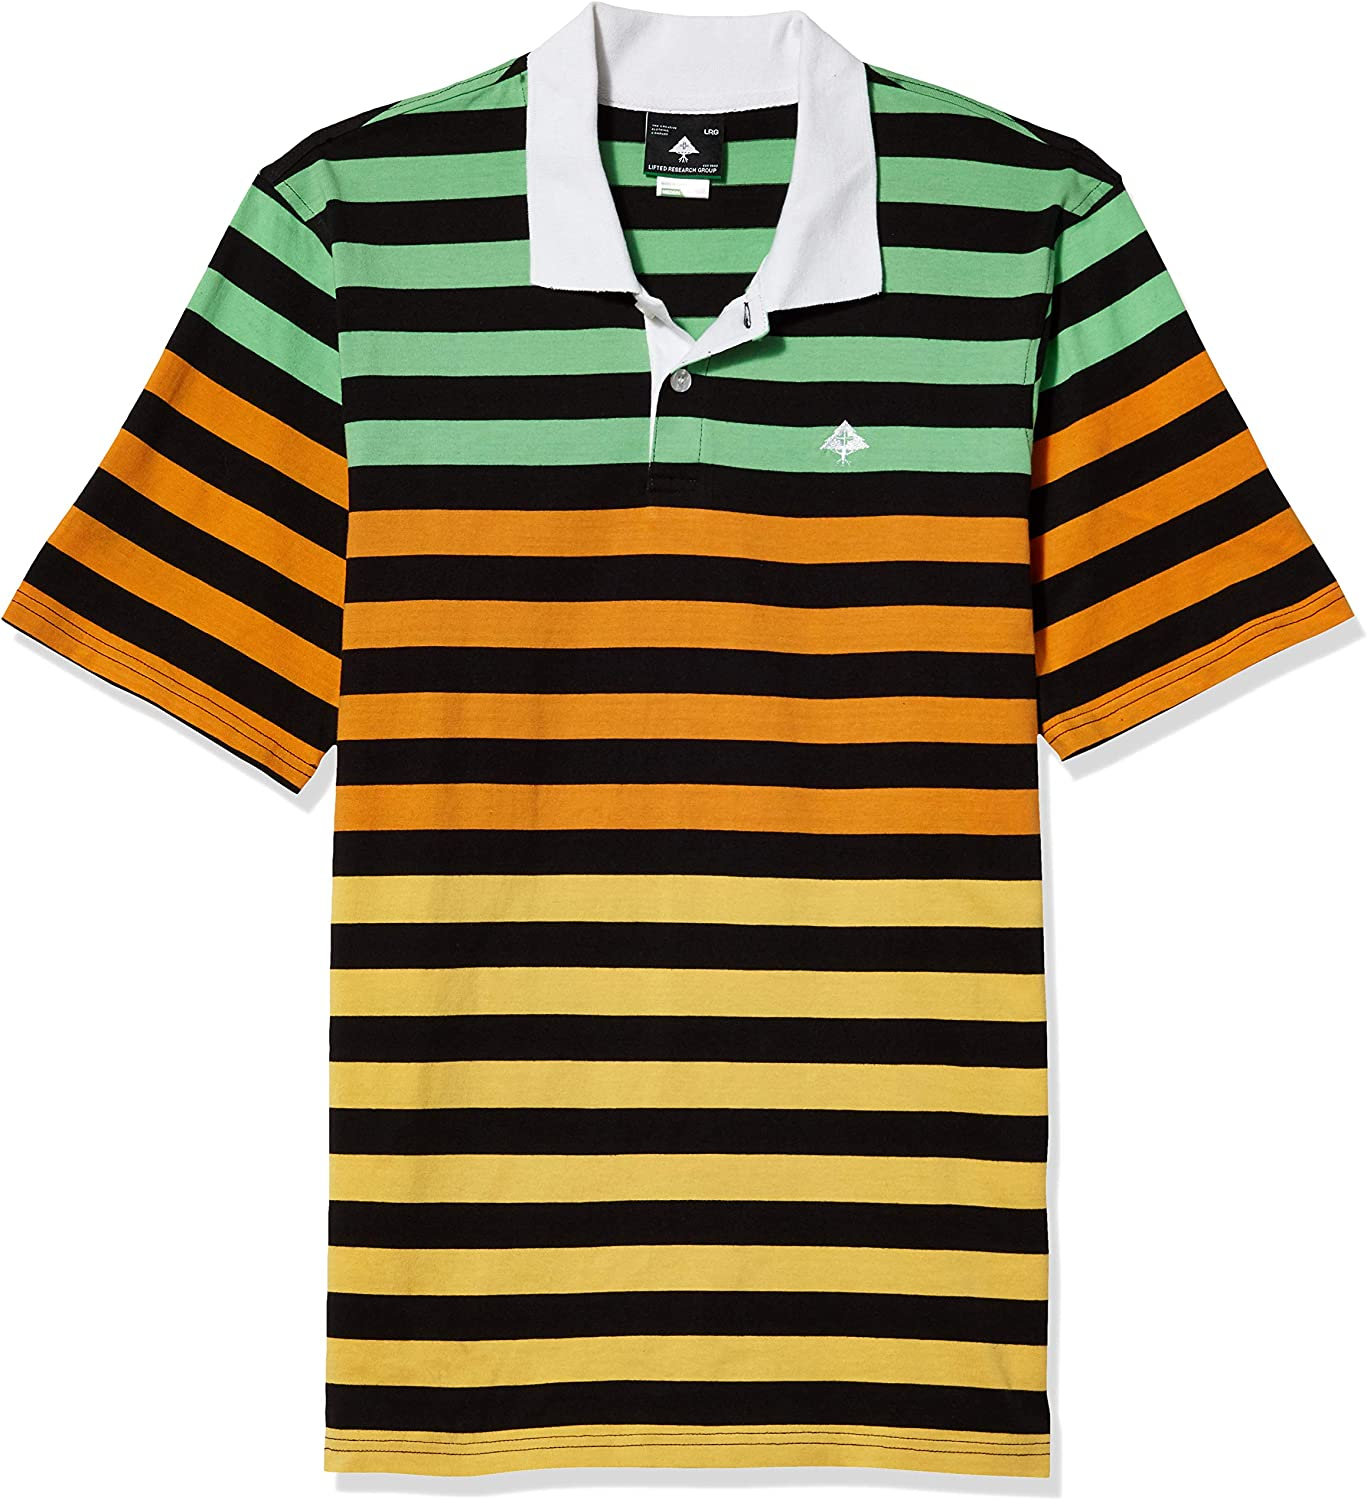 LRG Lifted Research Group Mens Rasta Striped Polo Shirt